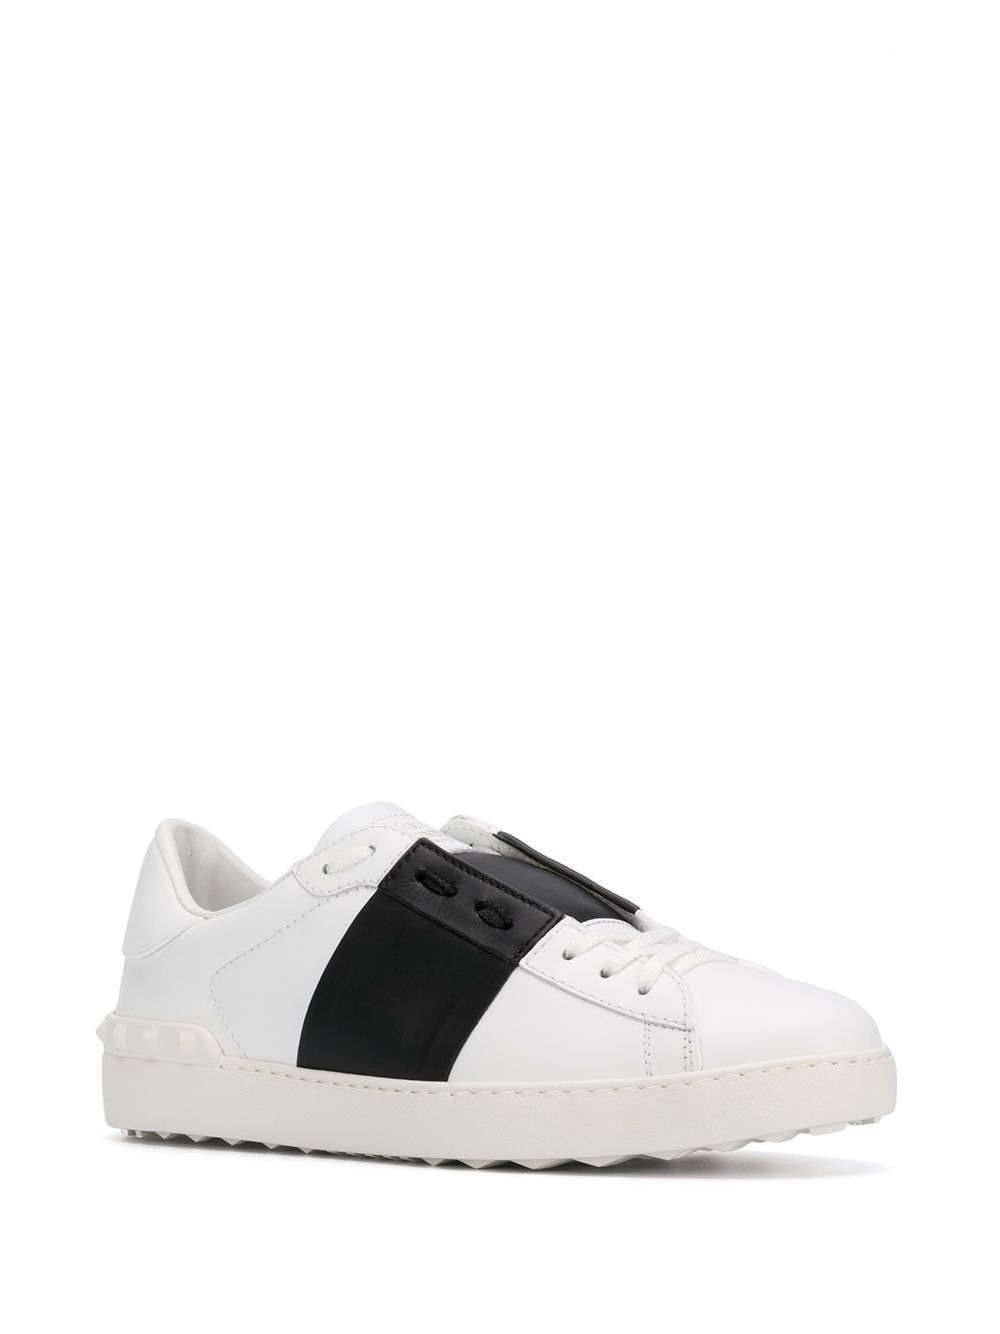 VALENTINO Leathers VALENTINO GARAVANI MEN'S WHITE LEATHER SNEAKERS